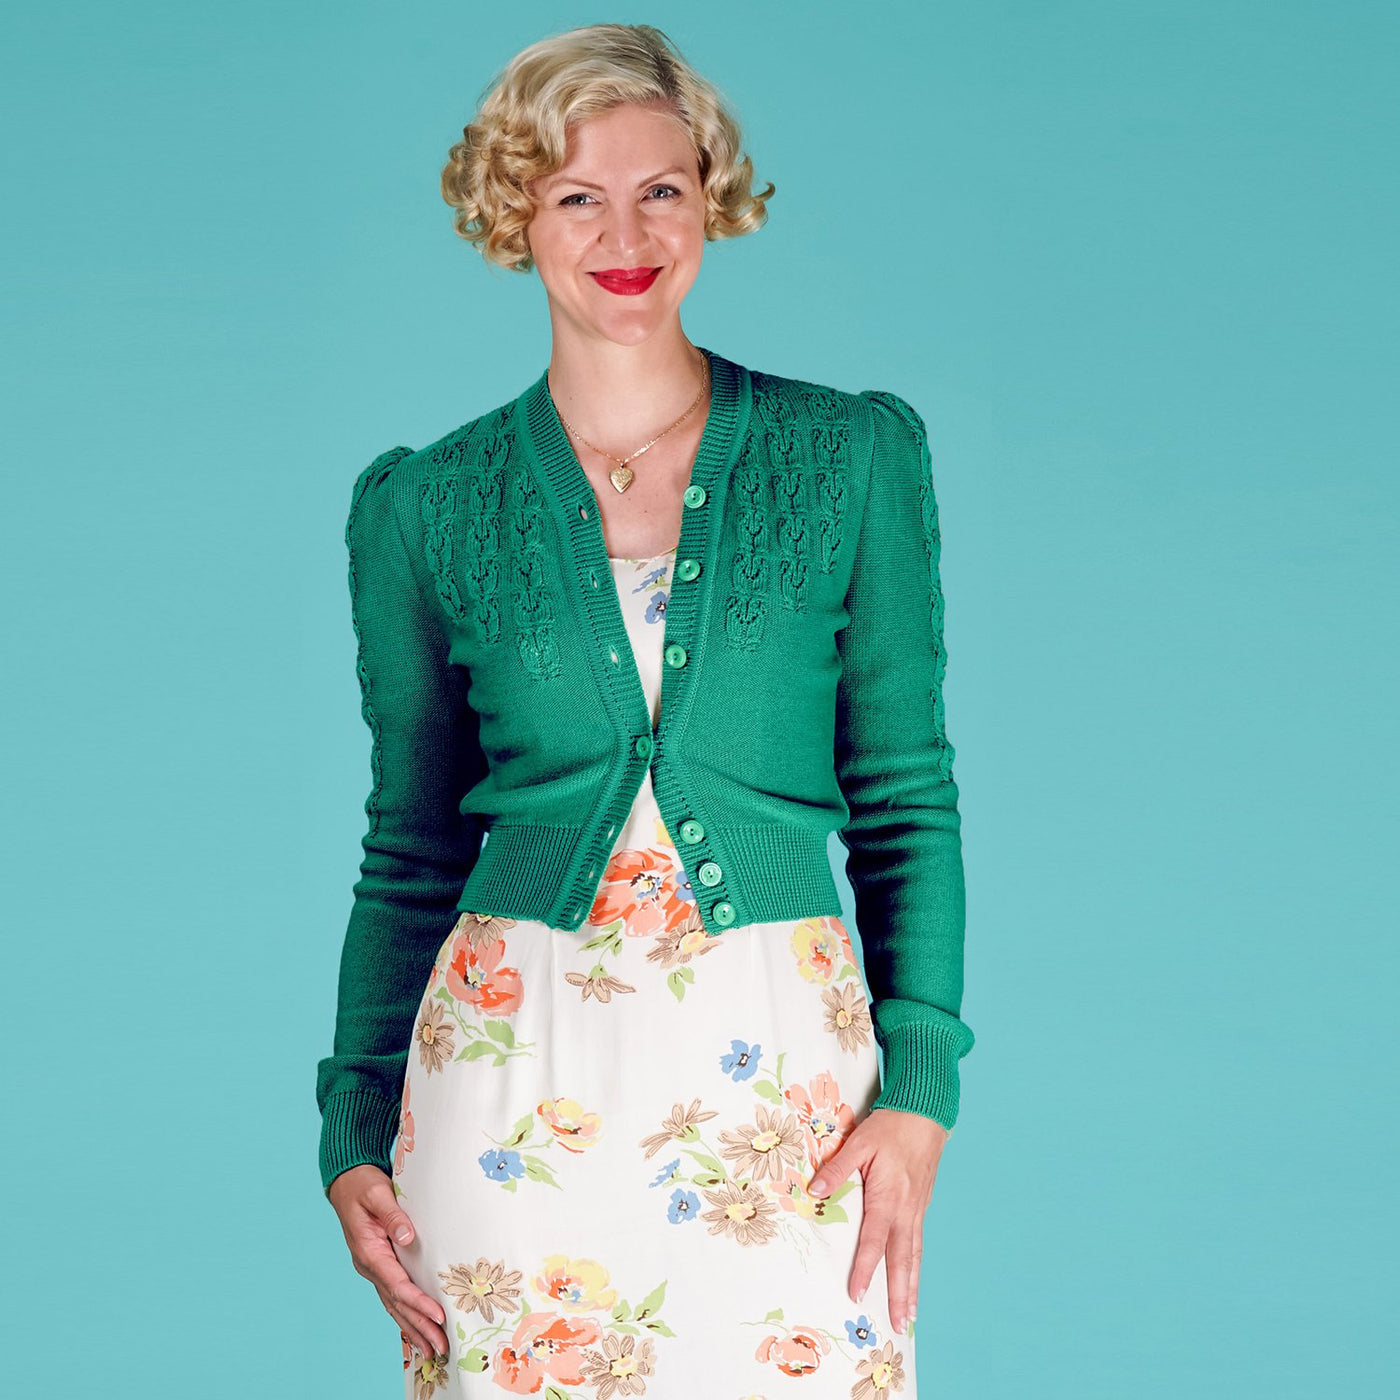 Emmy Design Emerald Green Peggy Sue Cardigan